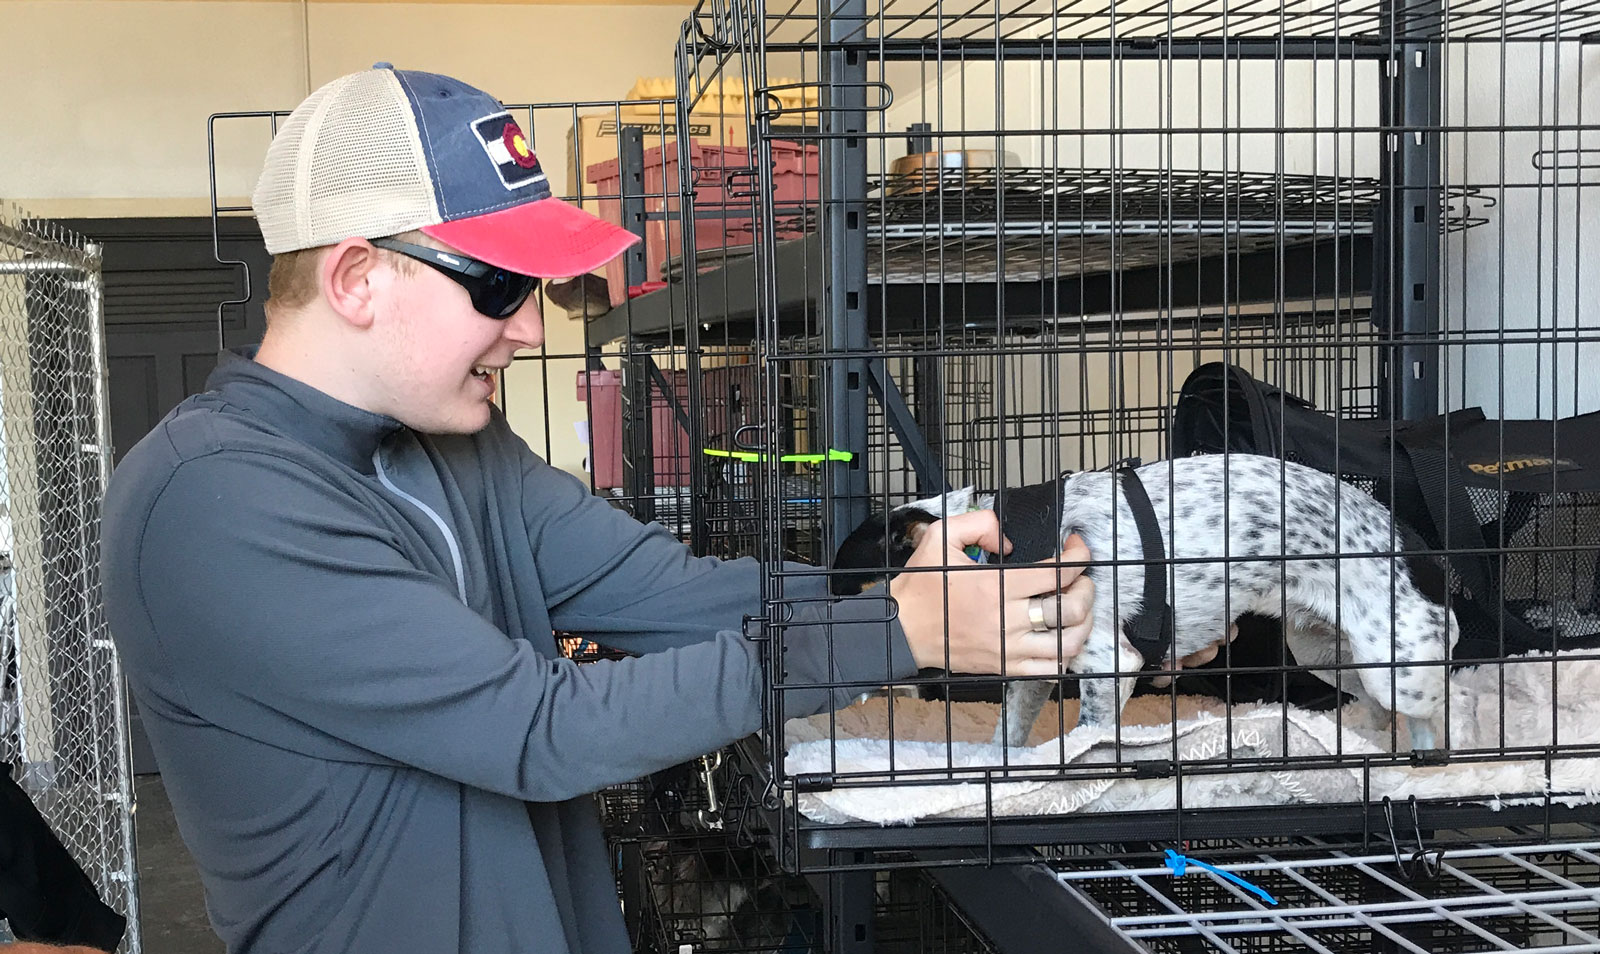 Retrieving Harper from the kennel